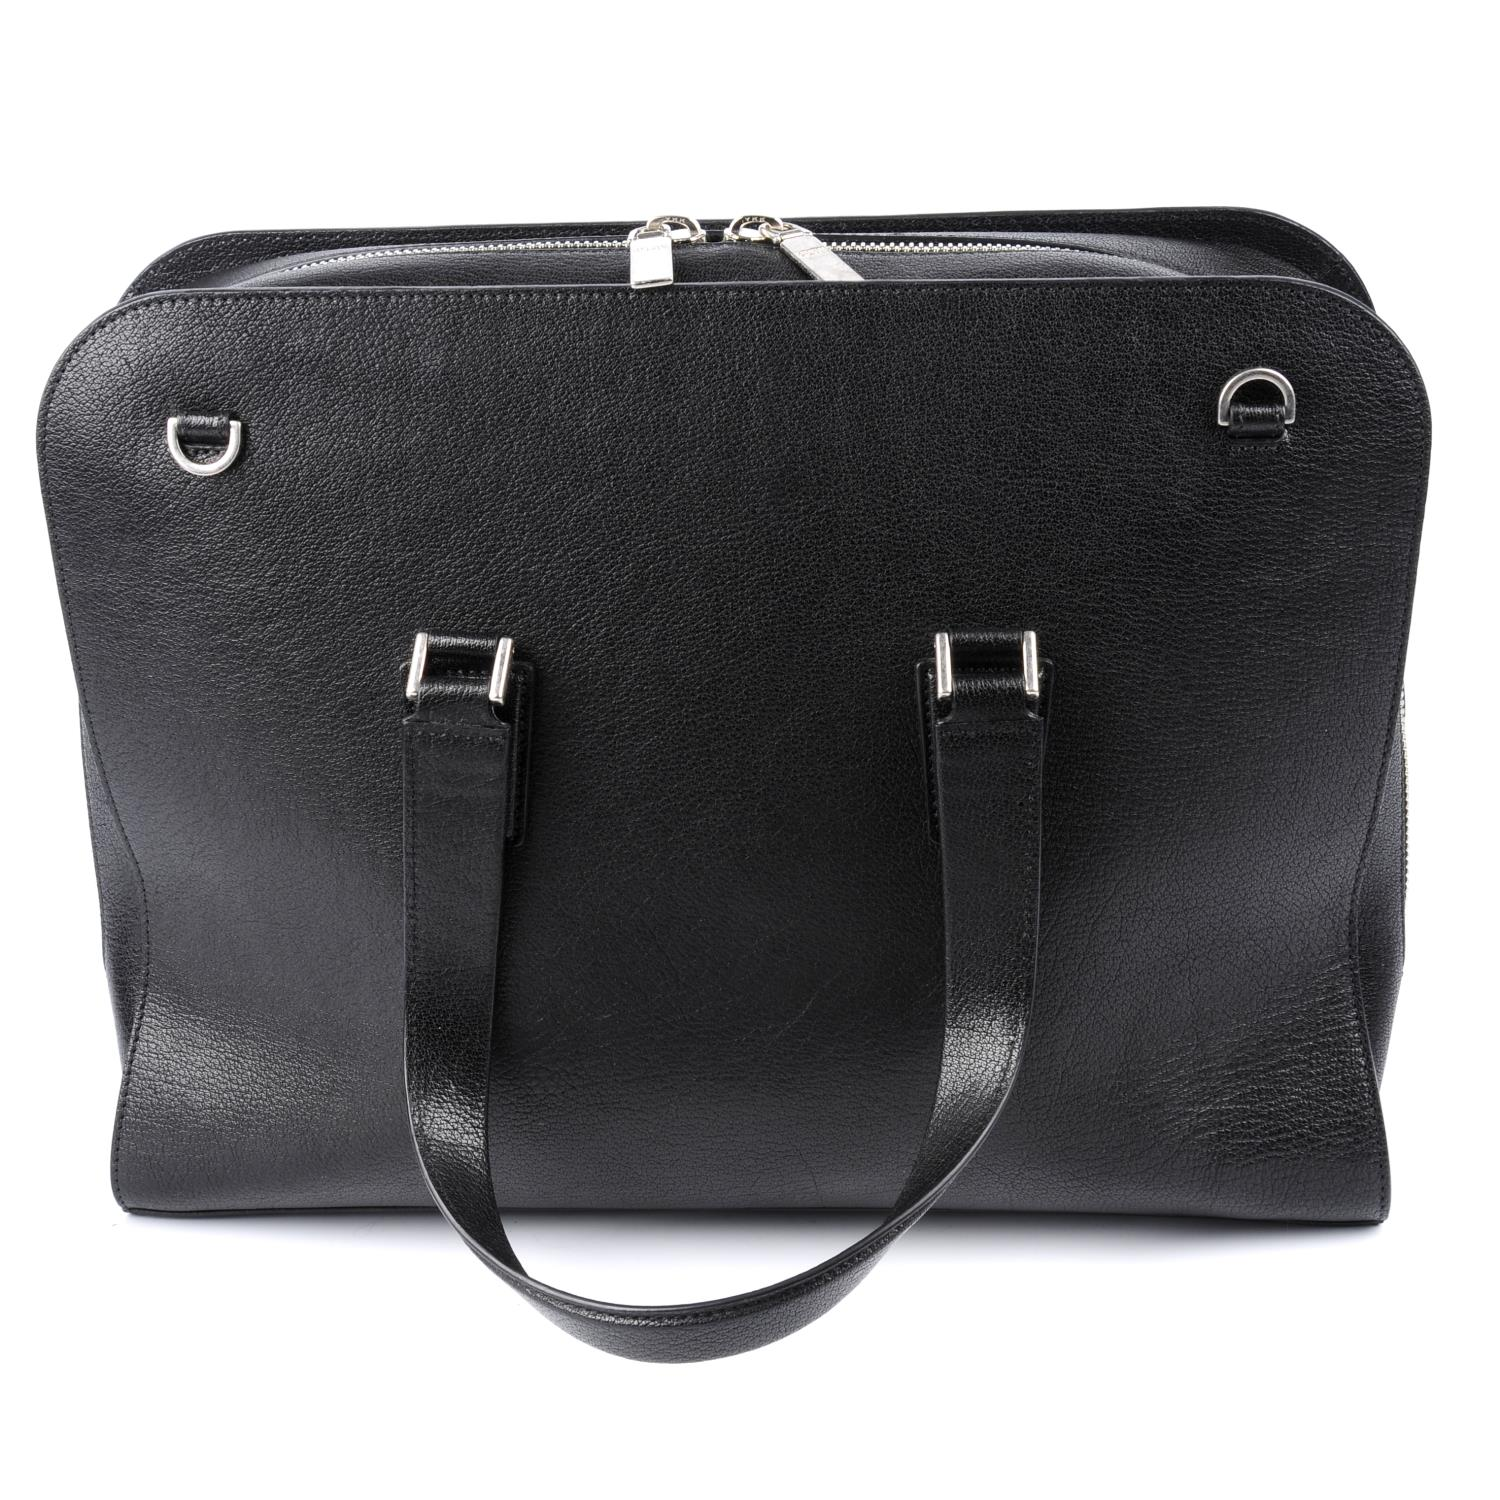 Lot 1 - ALEXANDER MCQUEEN - a black leather Heroic briefcase.